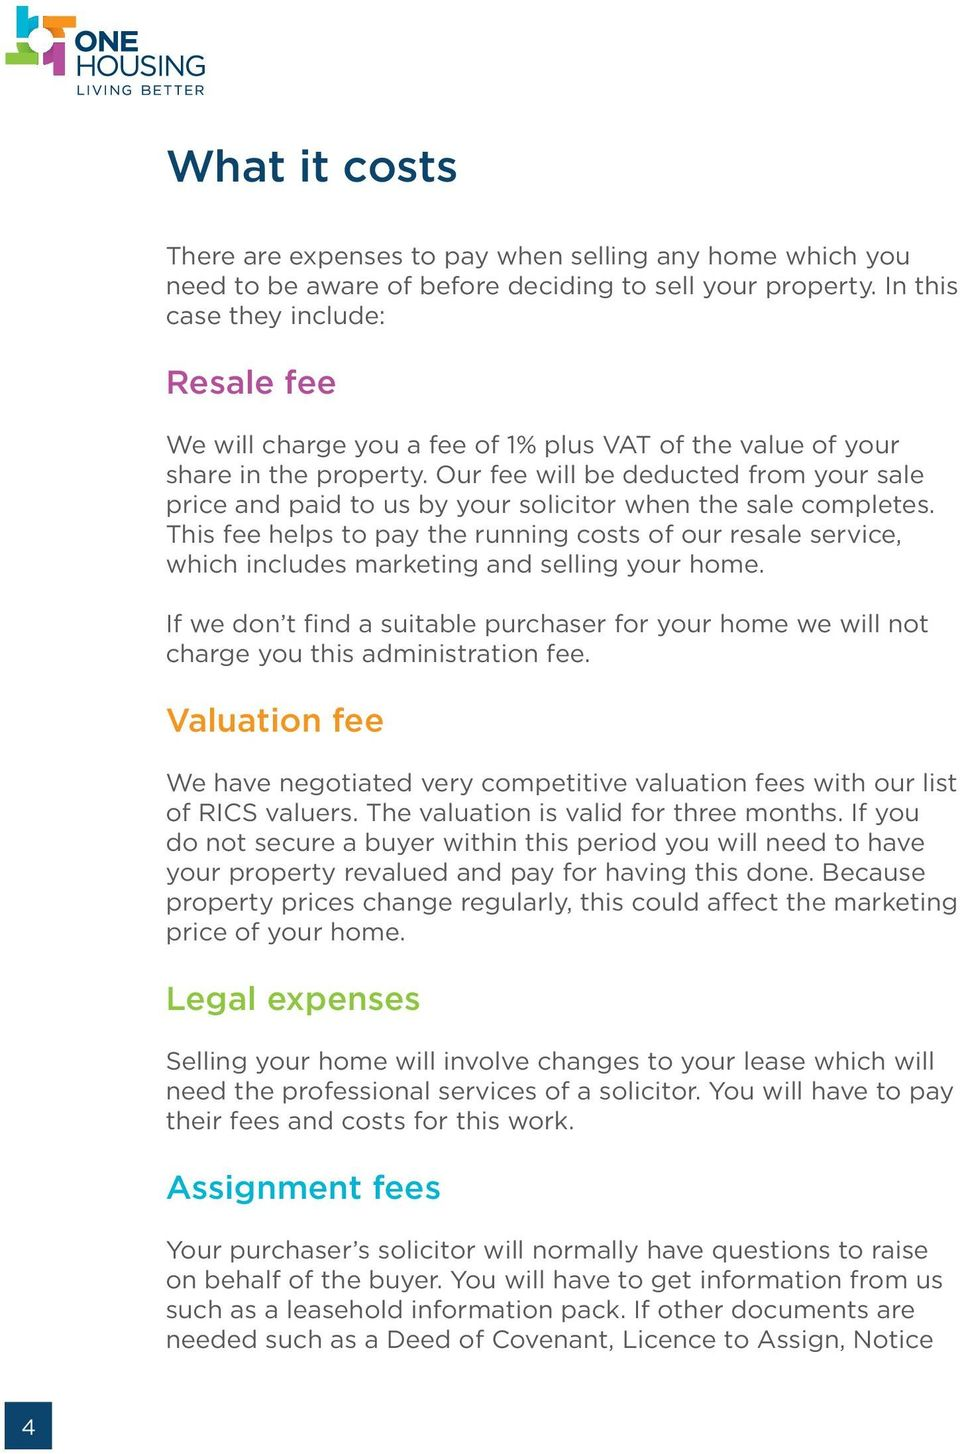 Our fee will be deducted from your sale price and paid to us by your solicitor when the sale completes.